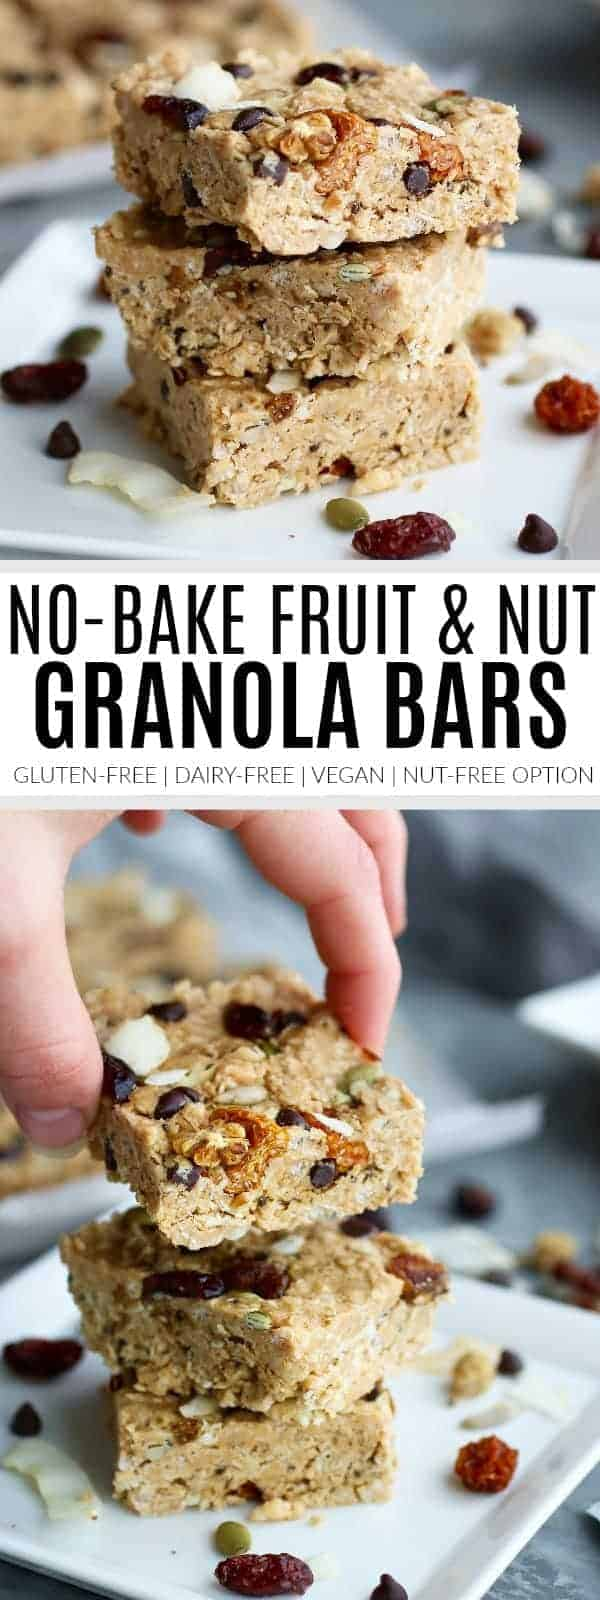 pinterest image for no-bake fruit and nut granola bars